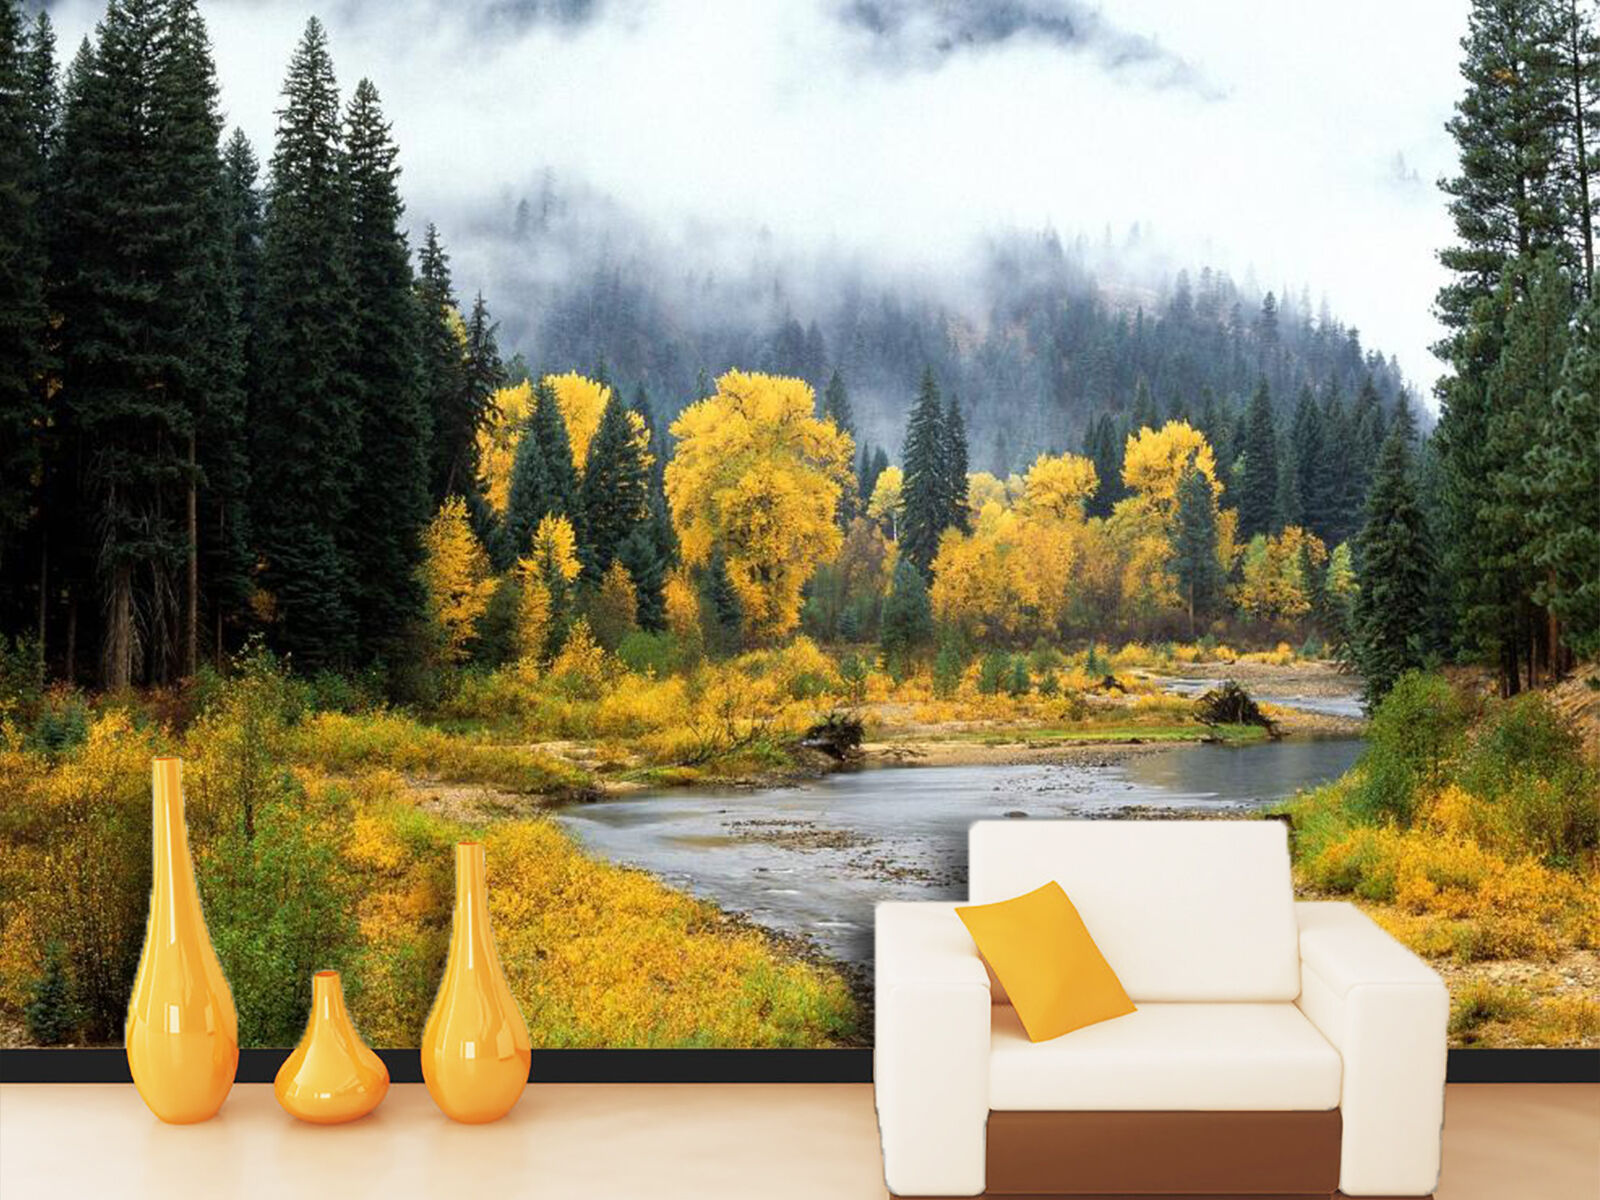 3D Foggy trees 2543 Wall Paper Wall Print Decal Wall Deco Indoor Wall Murals